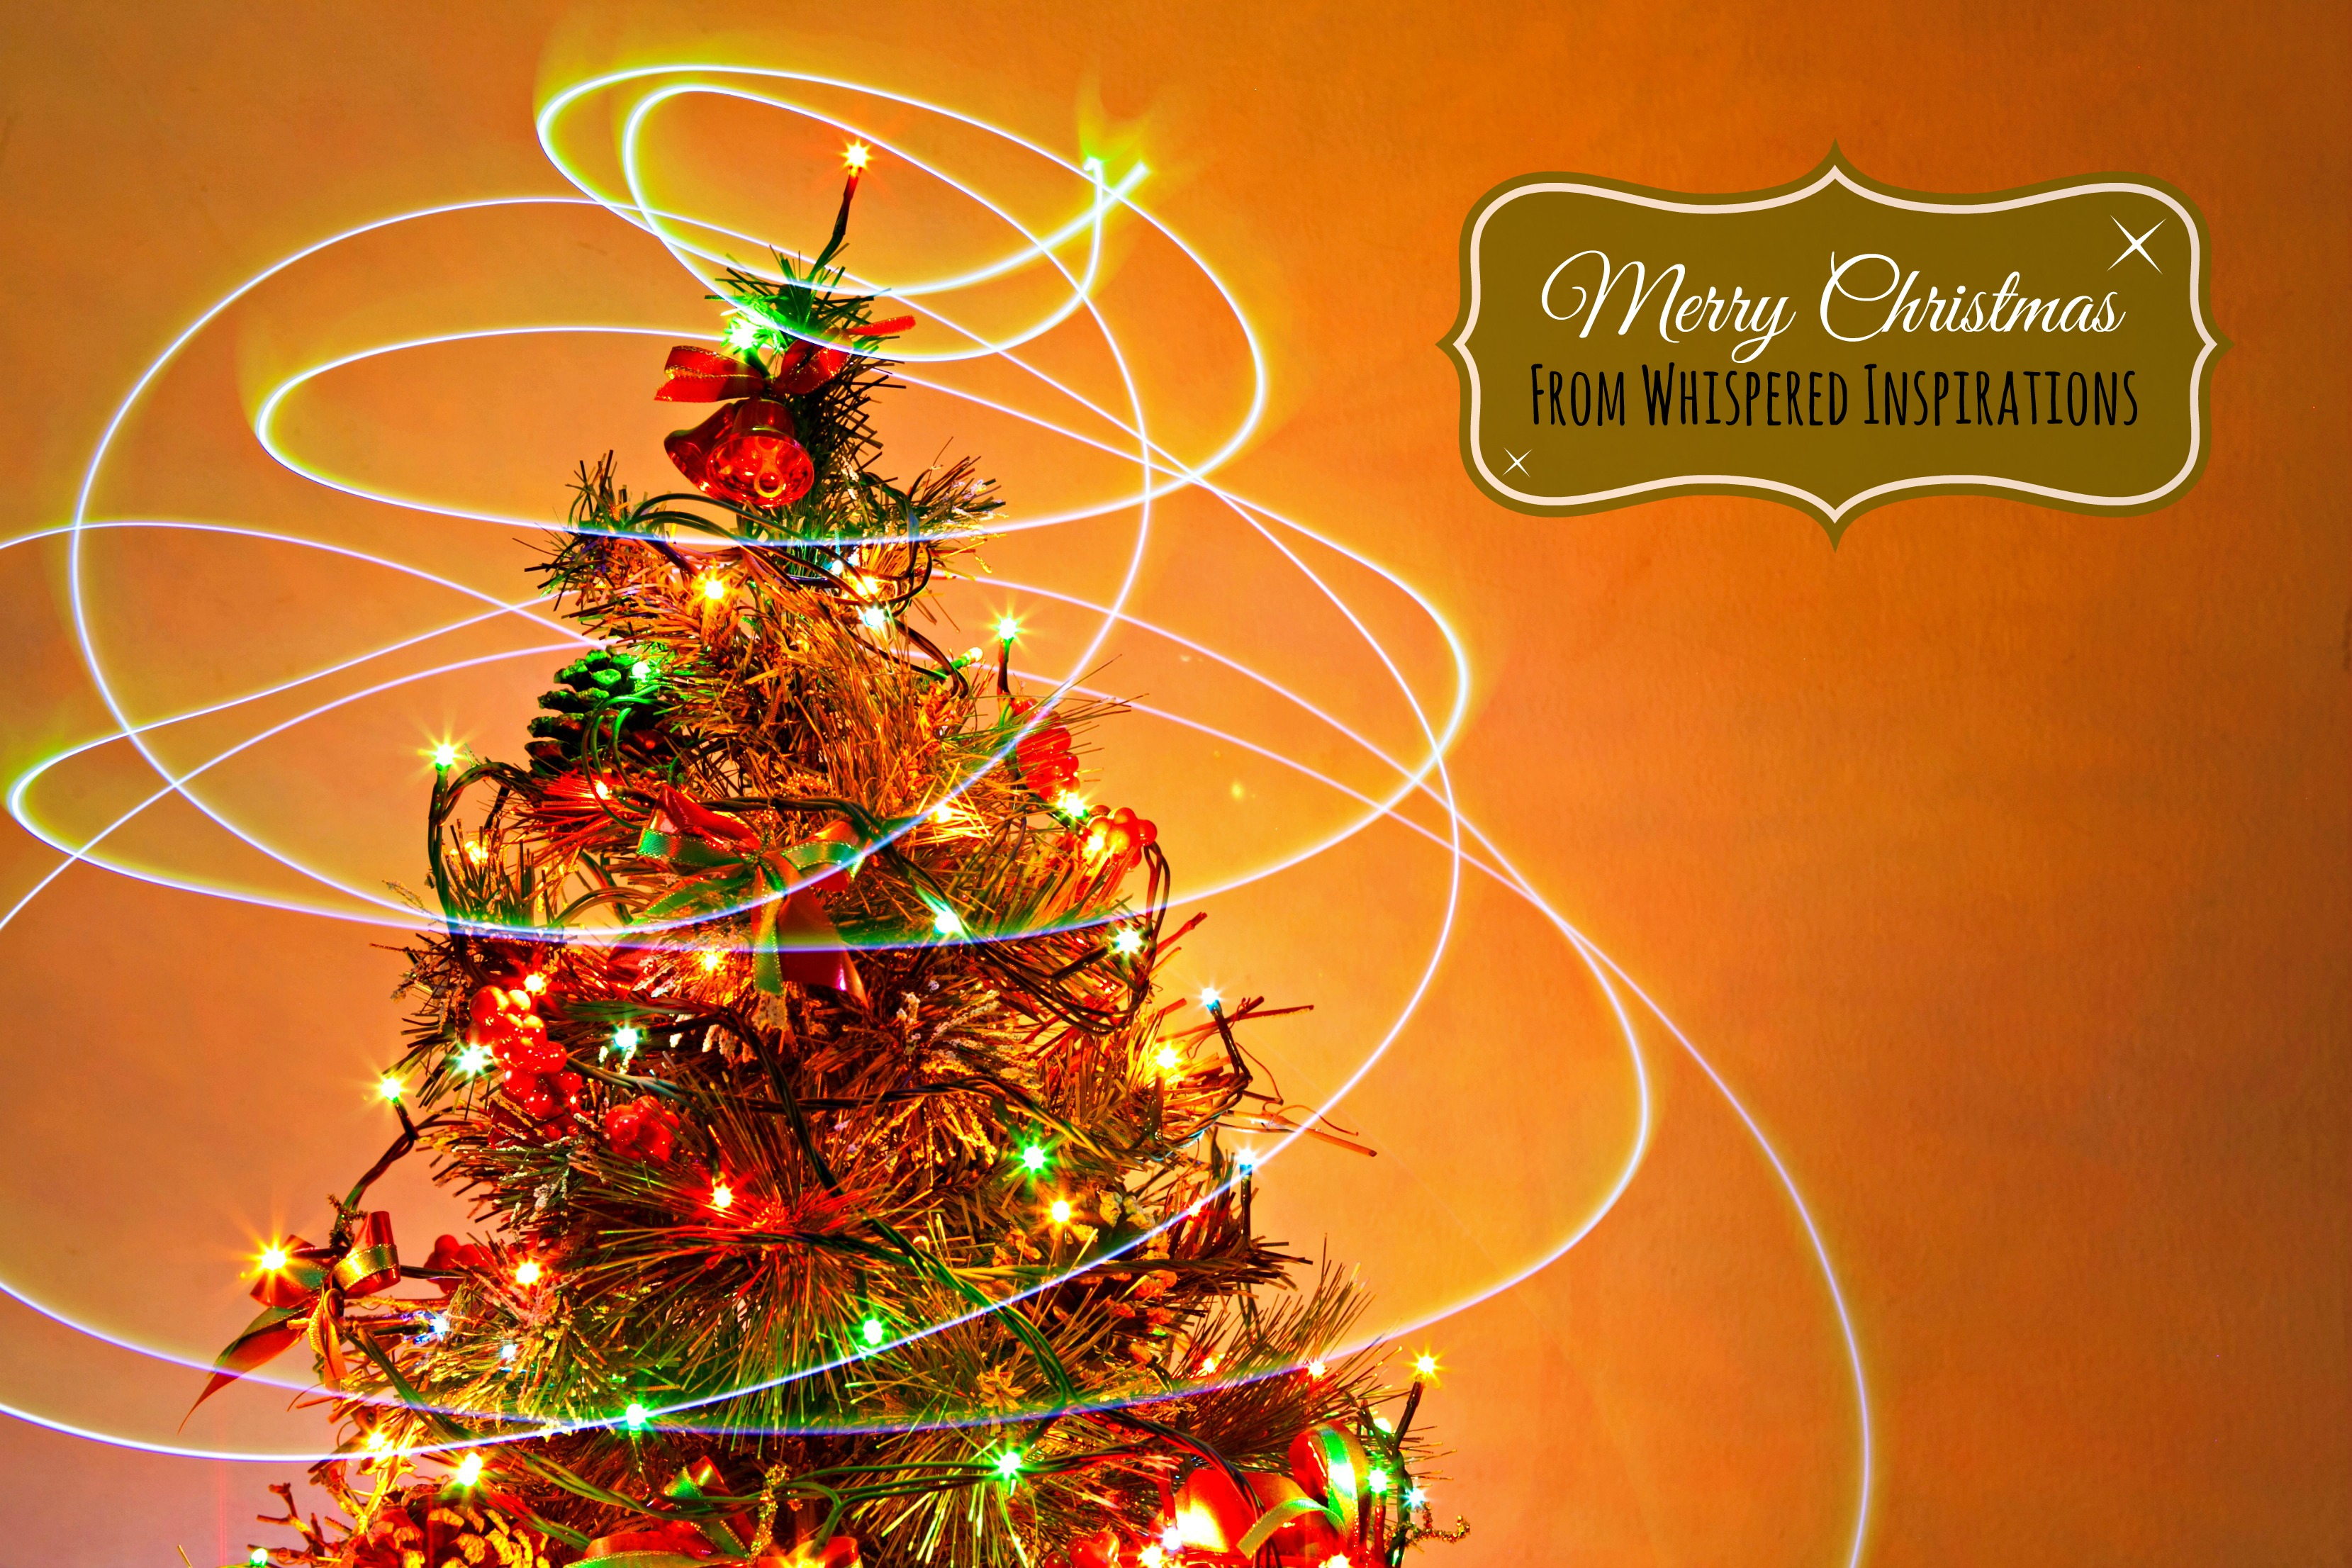 Merry Christmas from Whispered Inspirations: Wishing You the Merriest of Holidays to You and Yours! #christmas